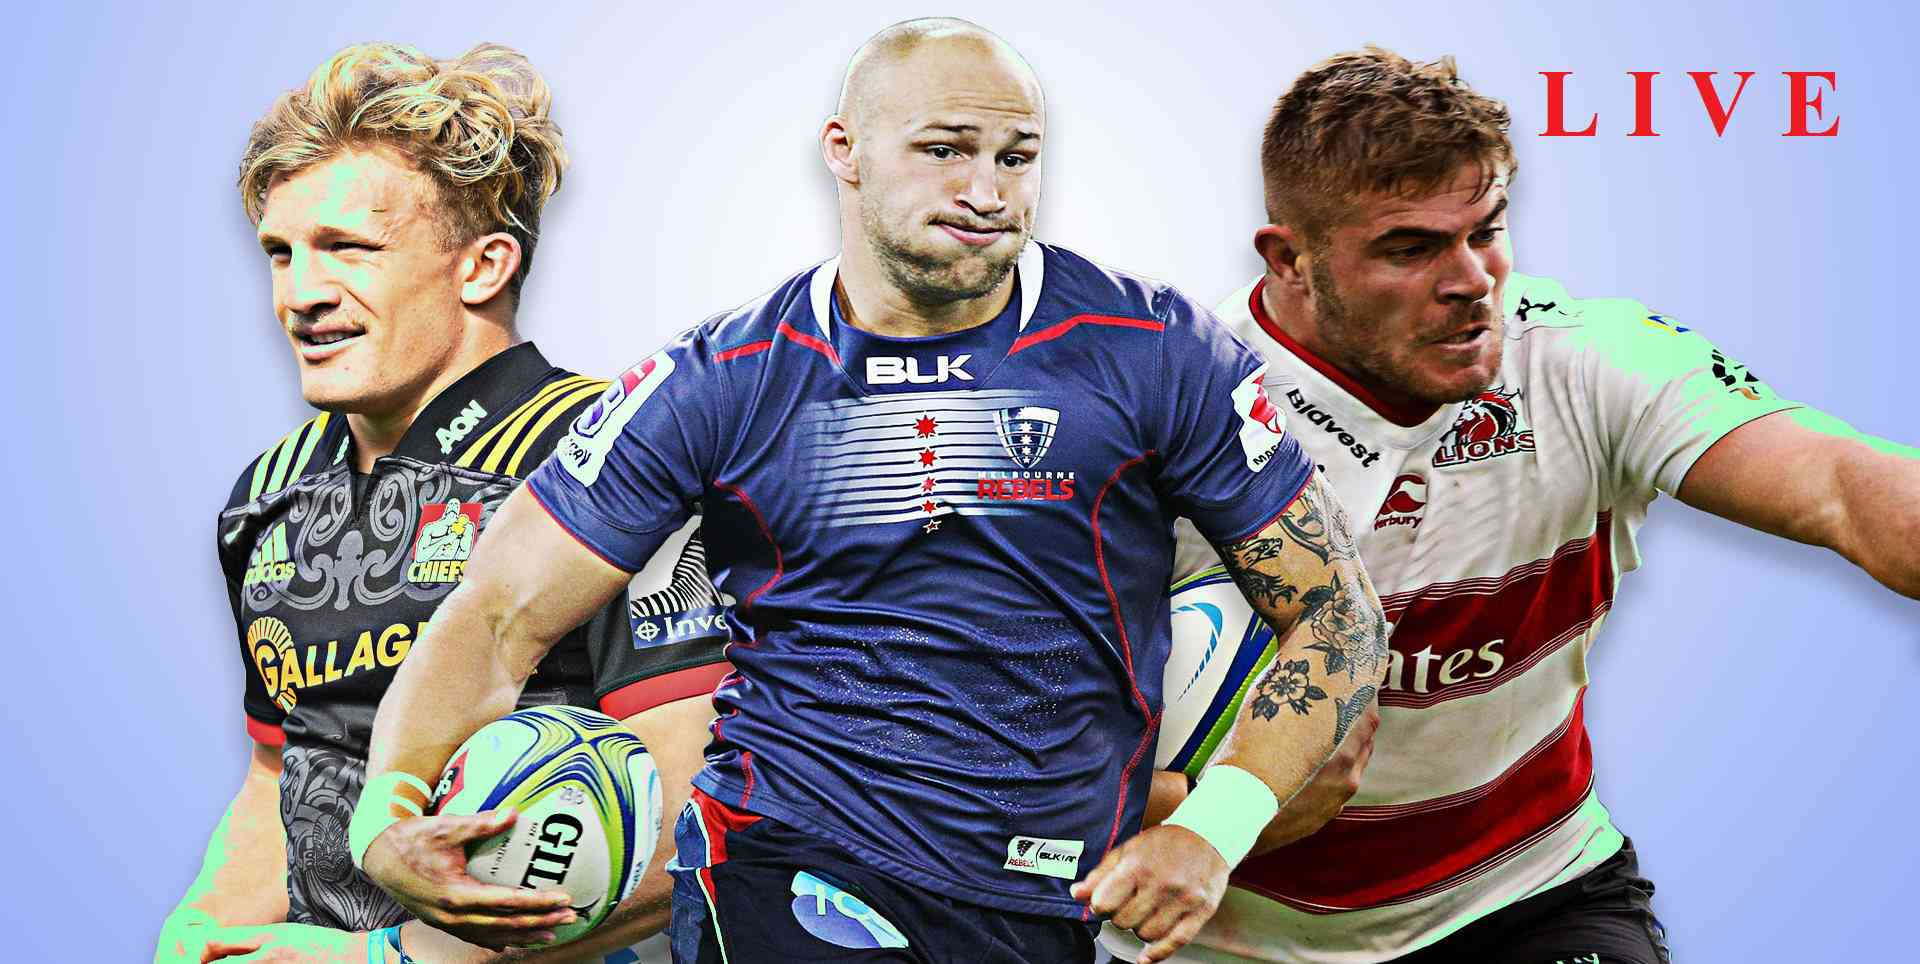 czech-republic-vs-lithuania-rugby-live